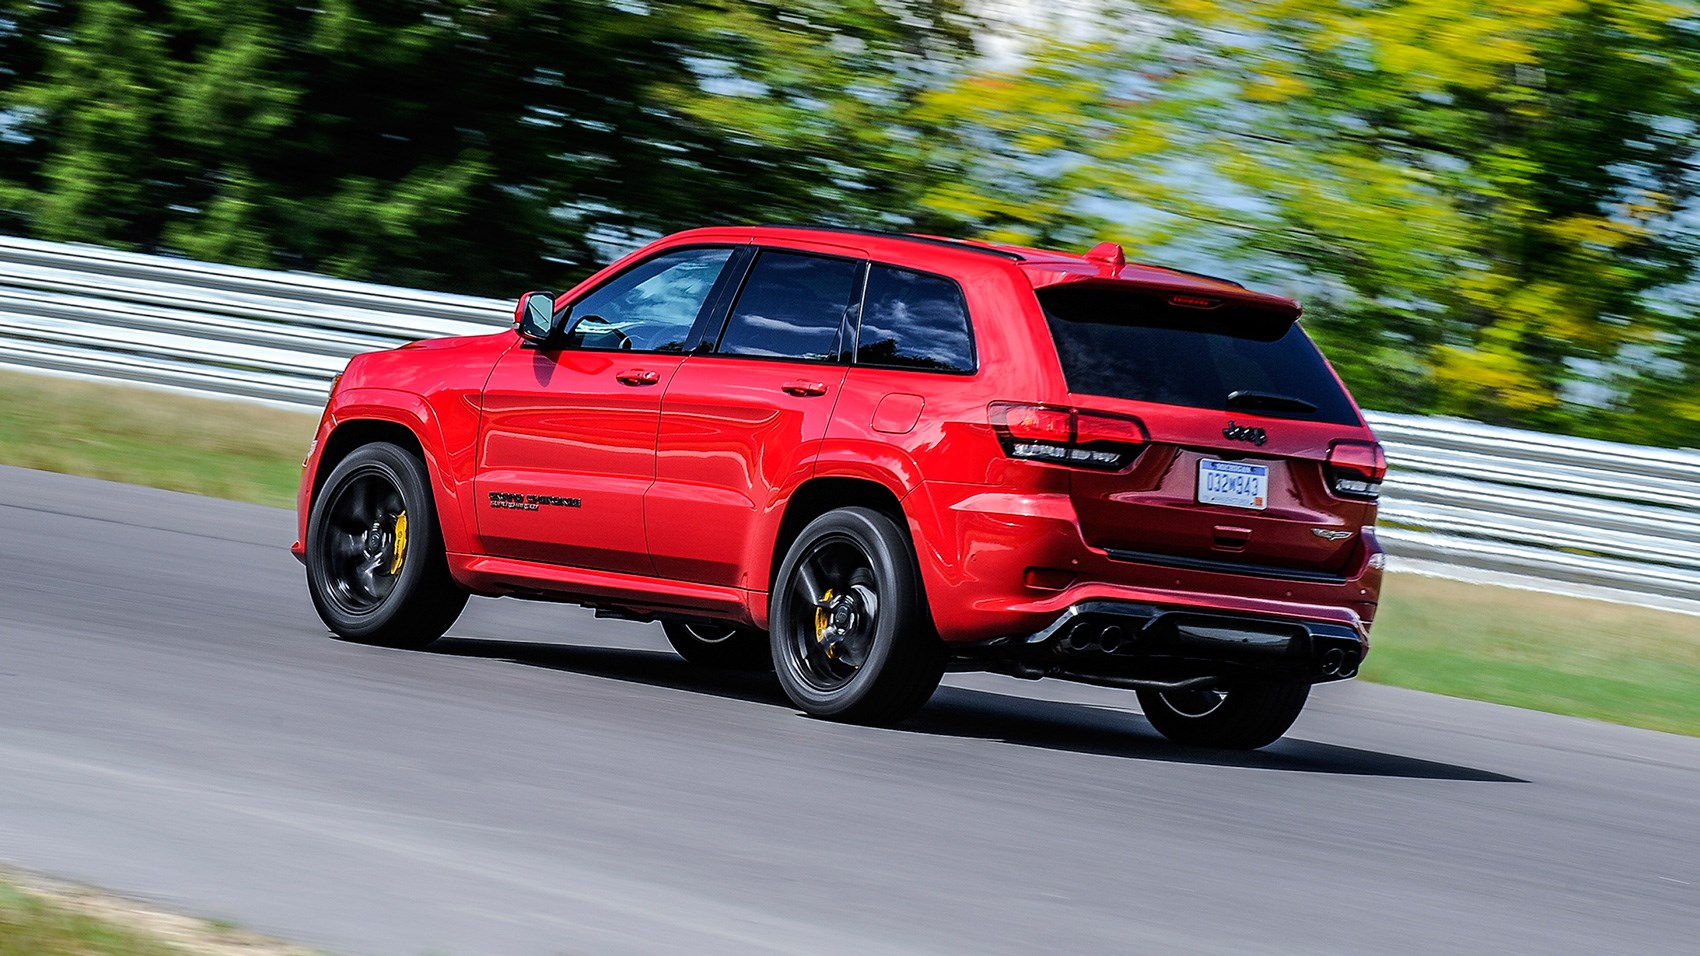 Jeep Grand Cherokee Trackhawk rear tracking